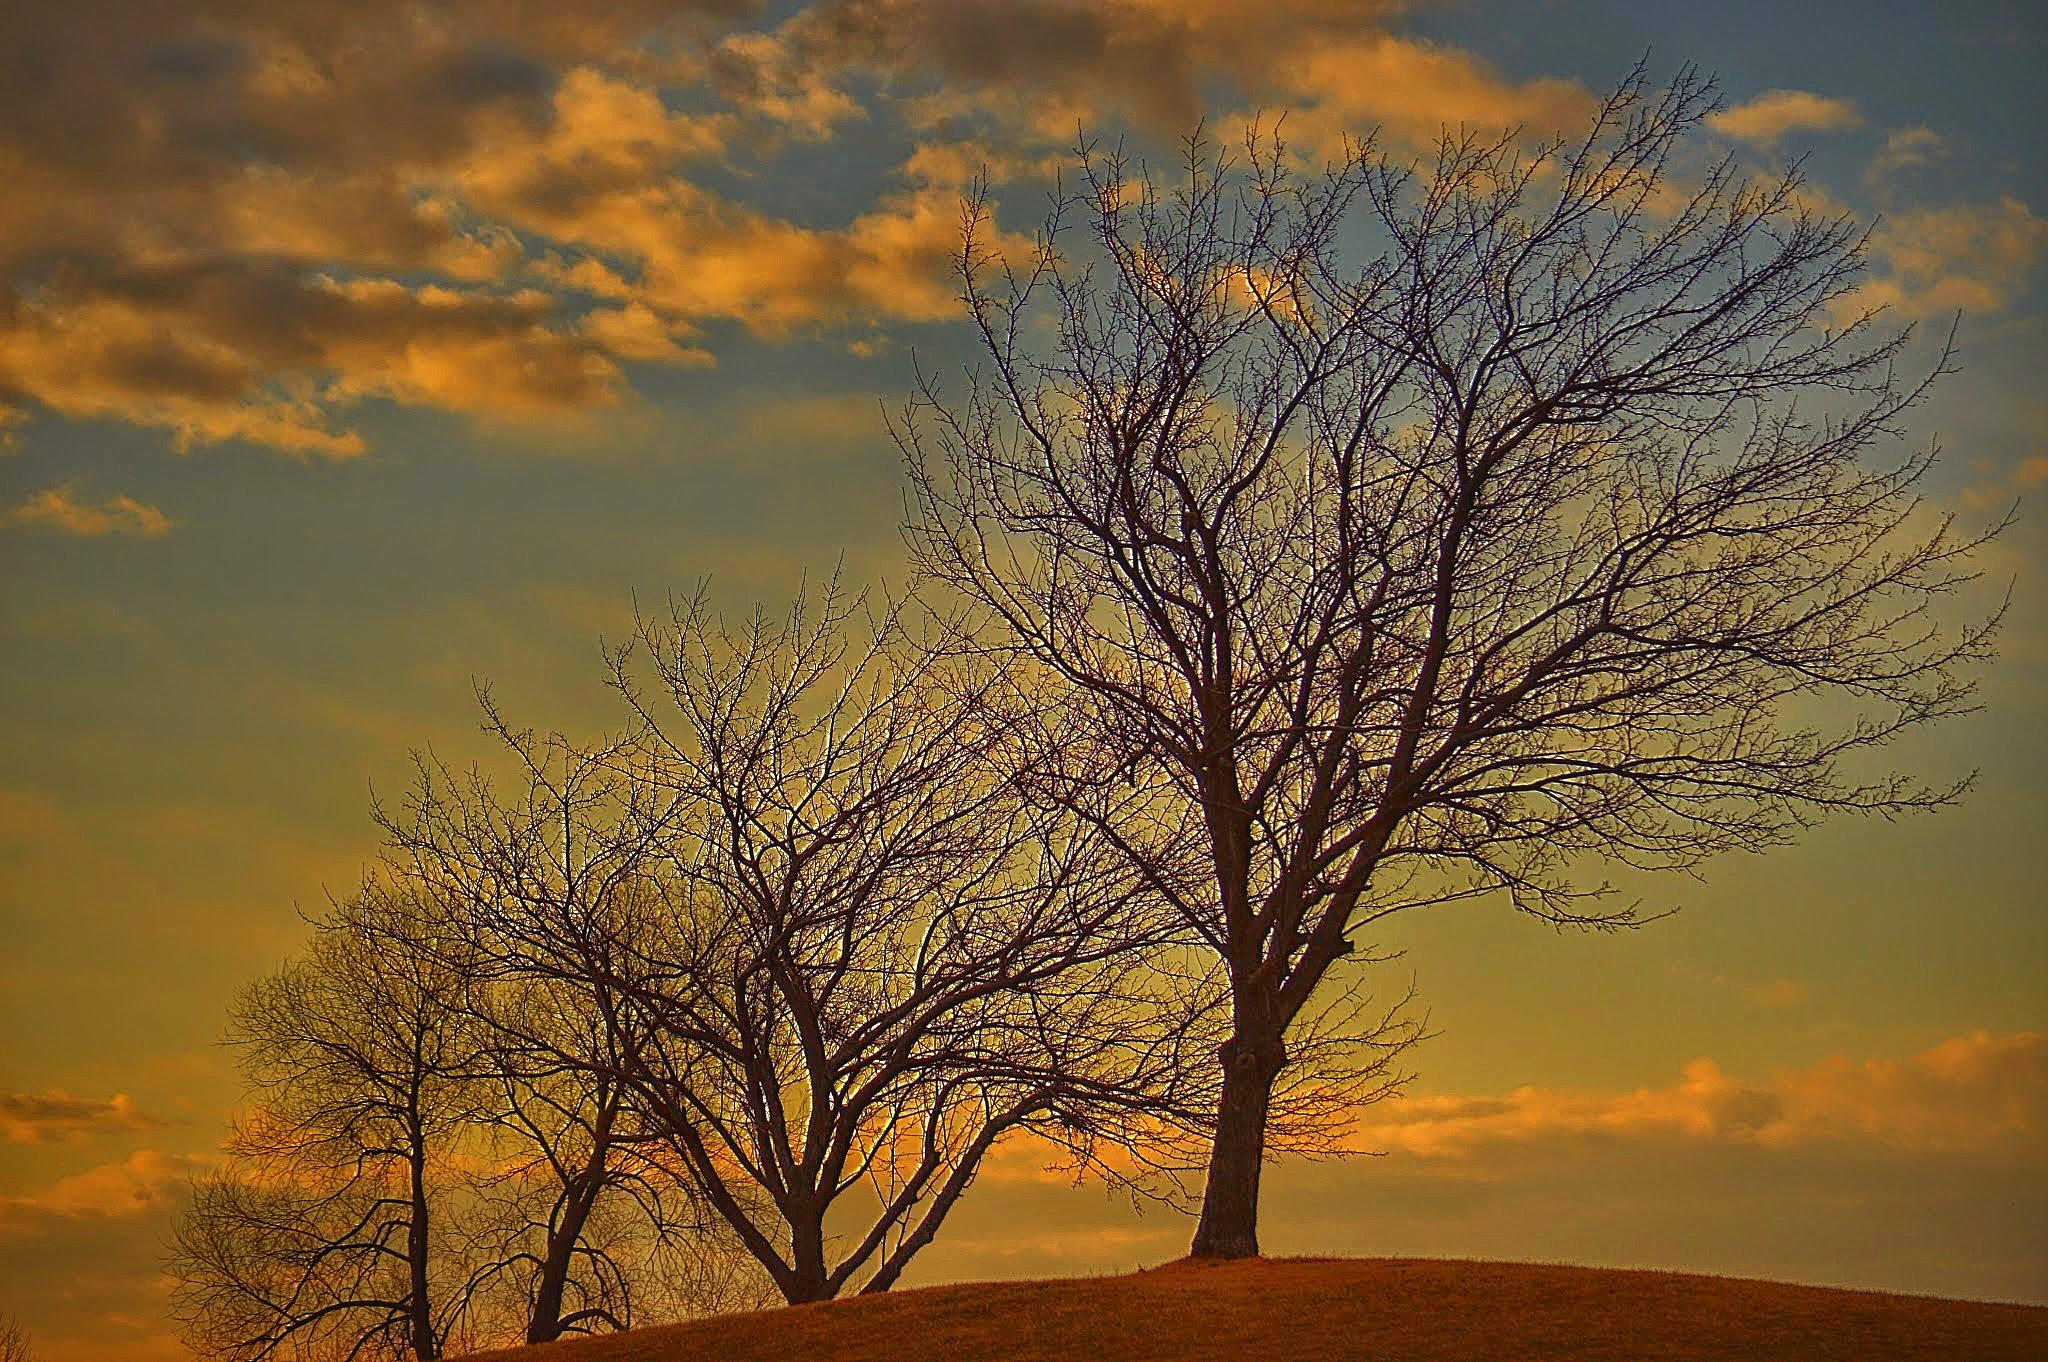 Afternoon trees by drcarlosesparza